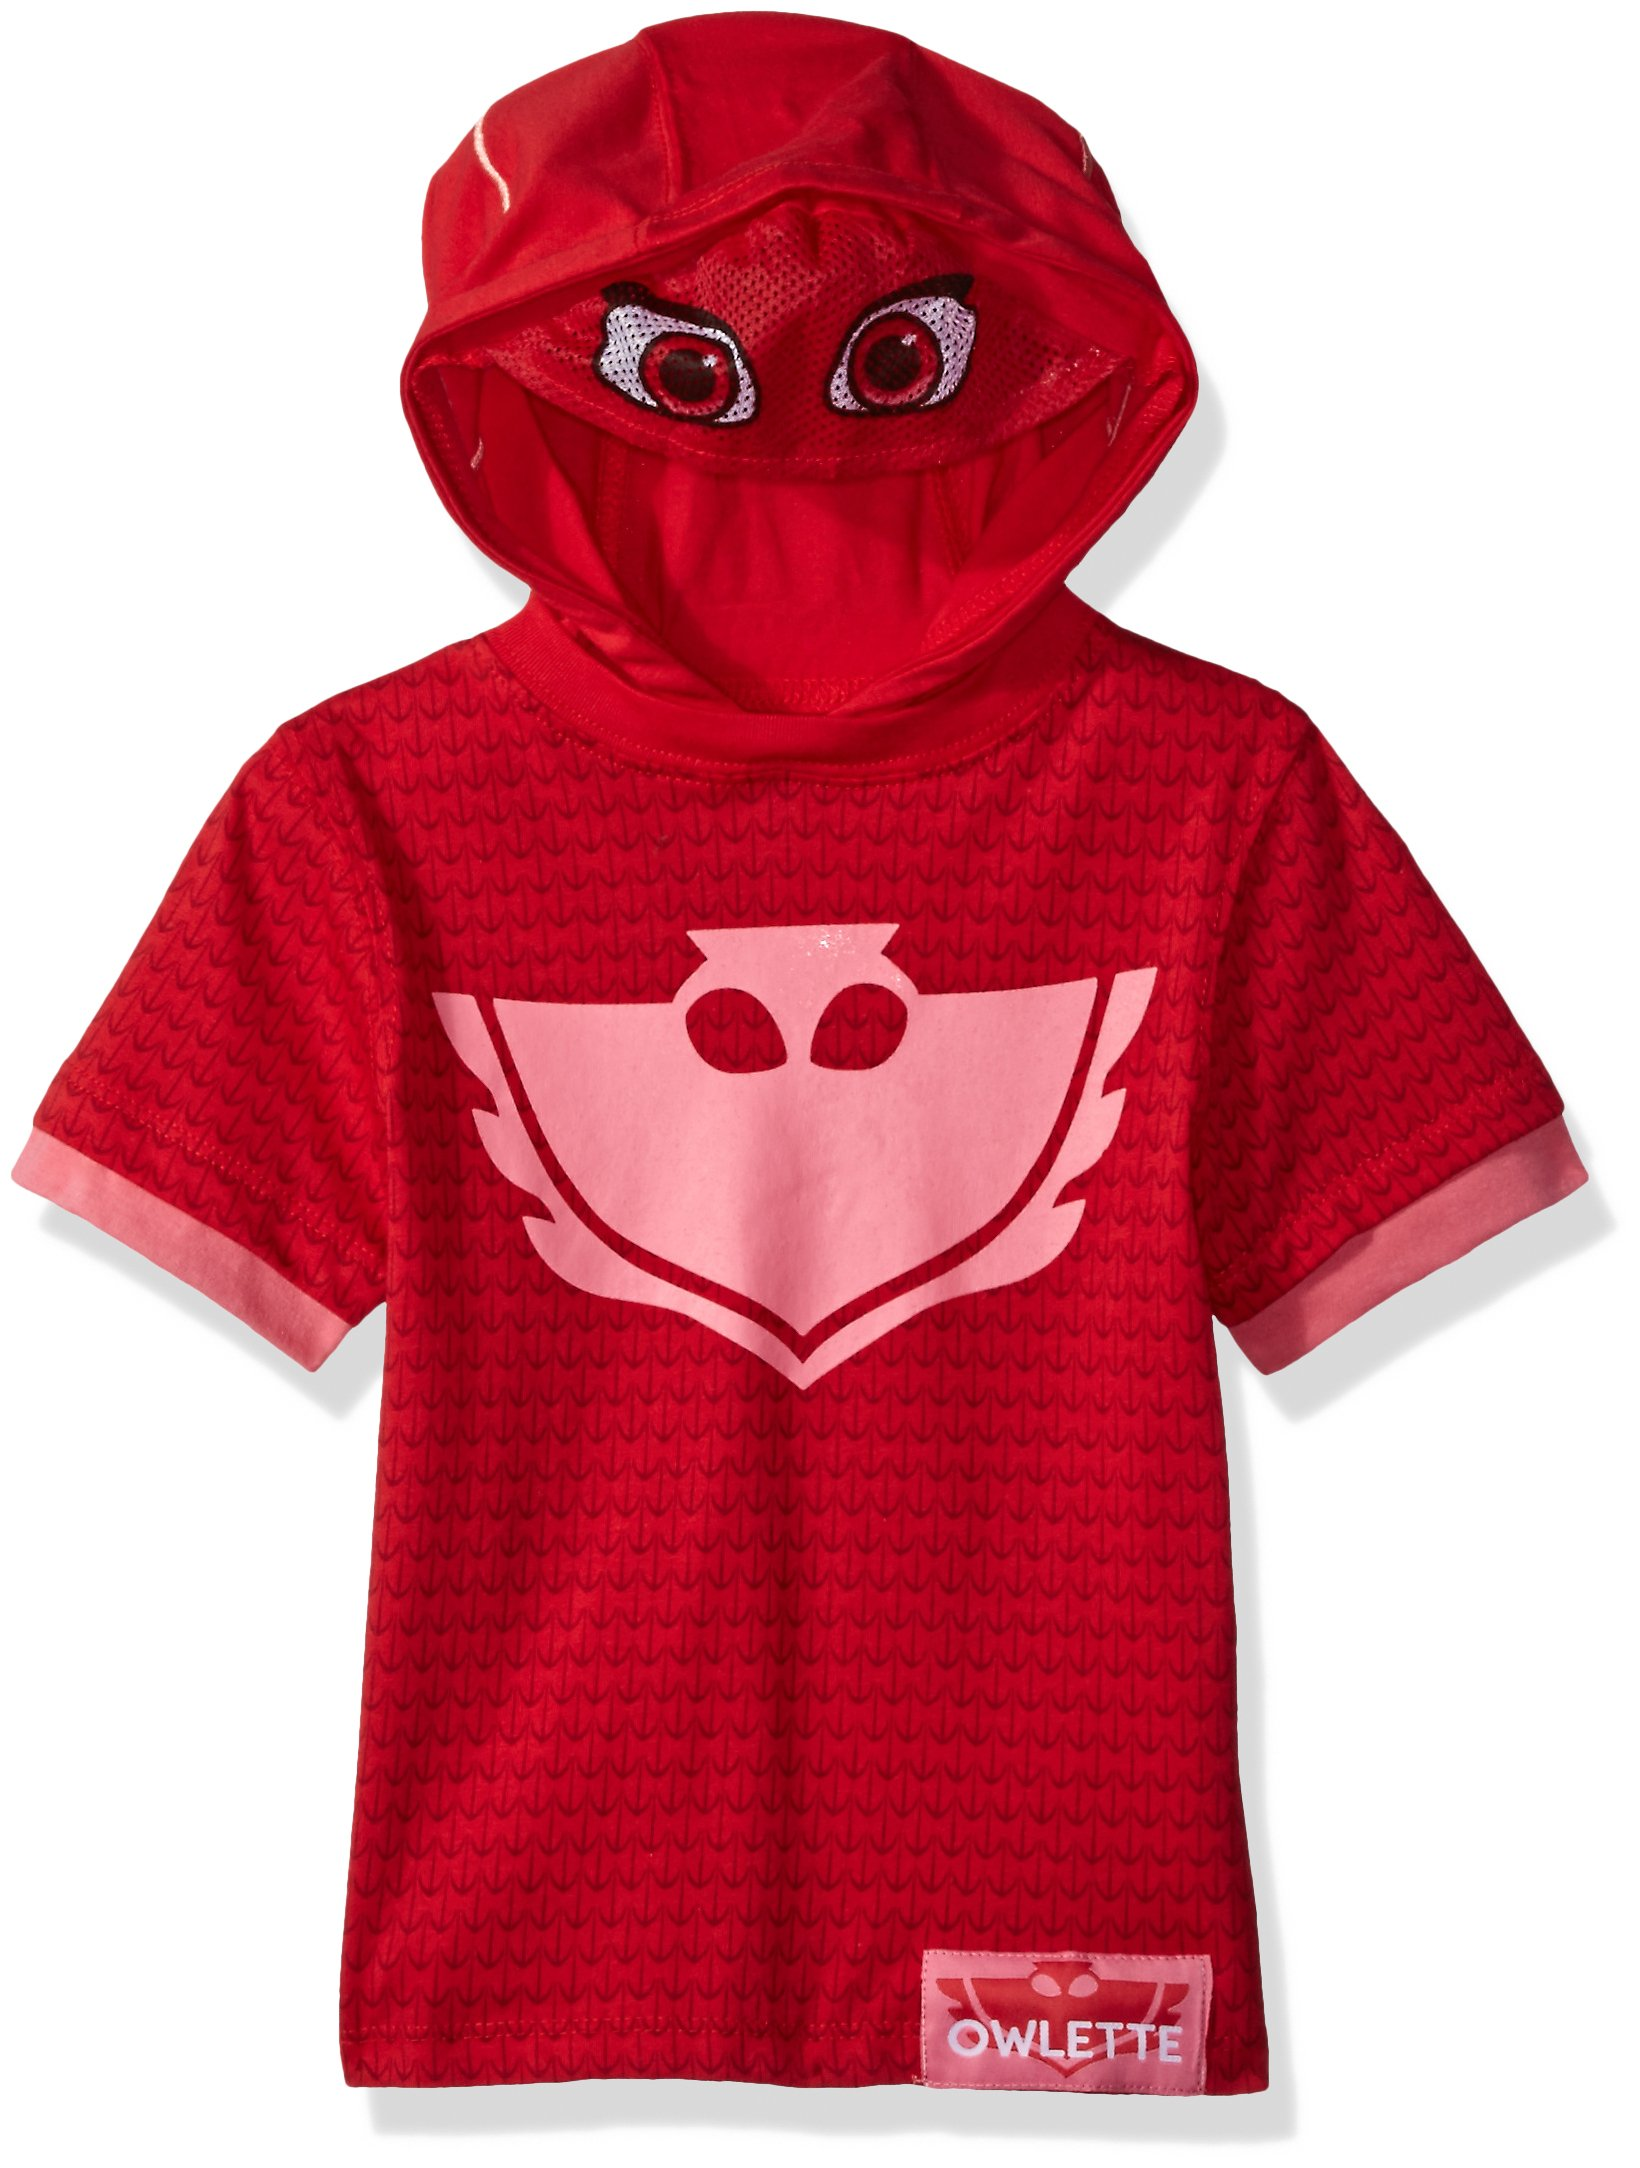 PJMASKS Girls' Tee Owlette Hoodie, Pink Short Sleeve, 4T by PJMASKS (Image #1)